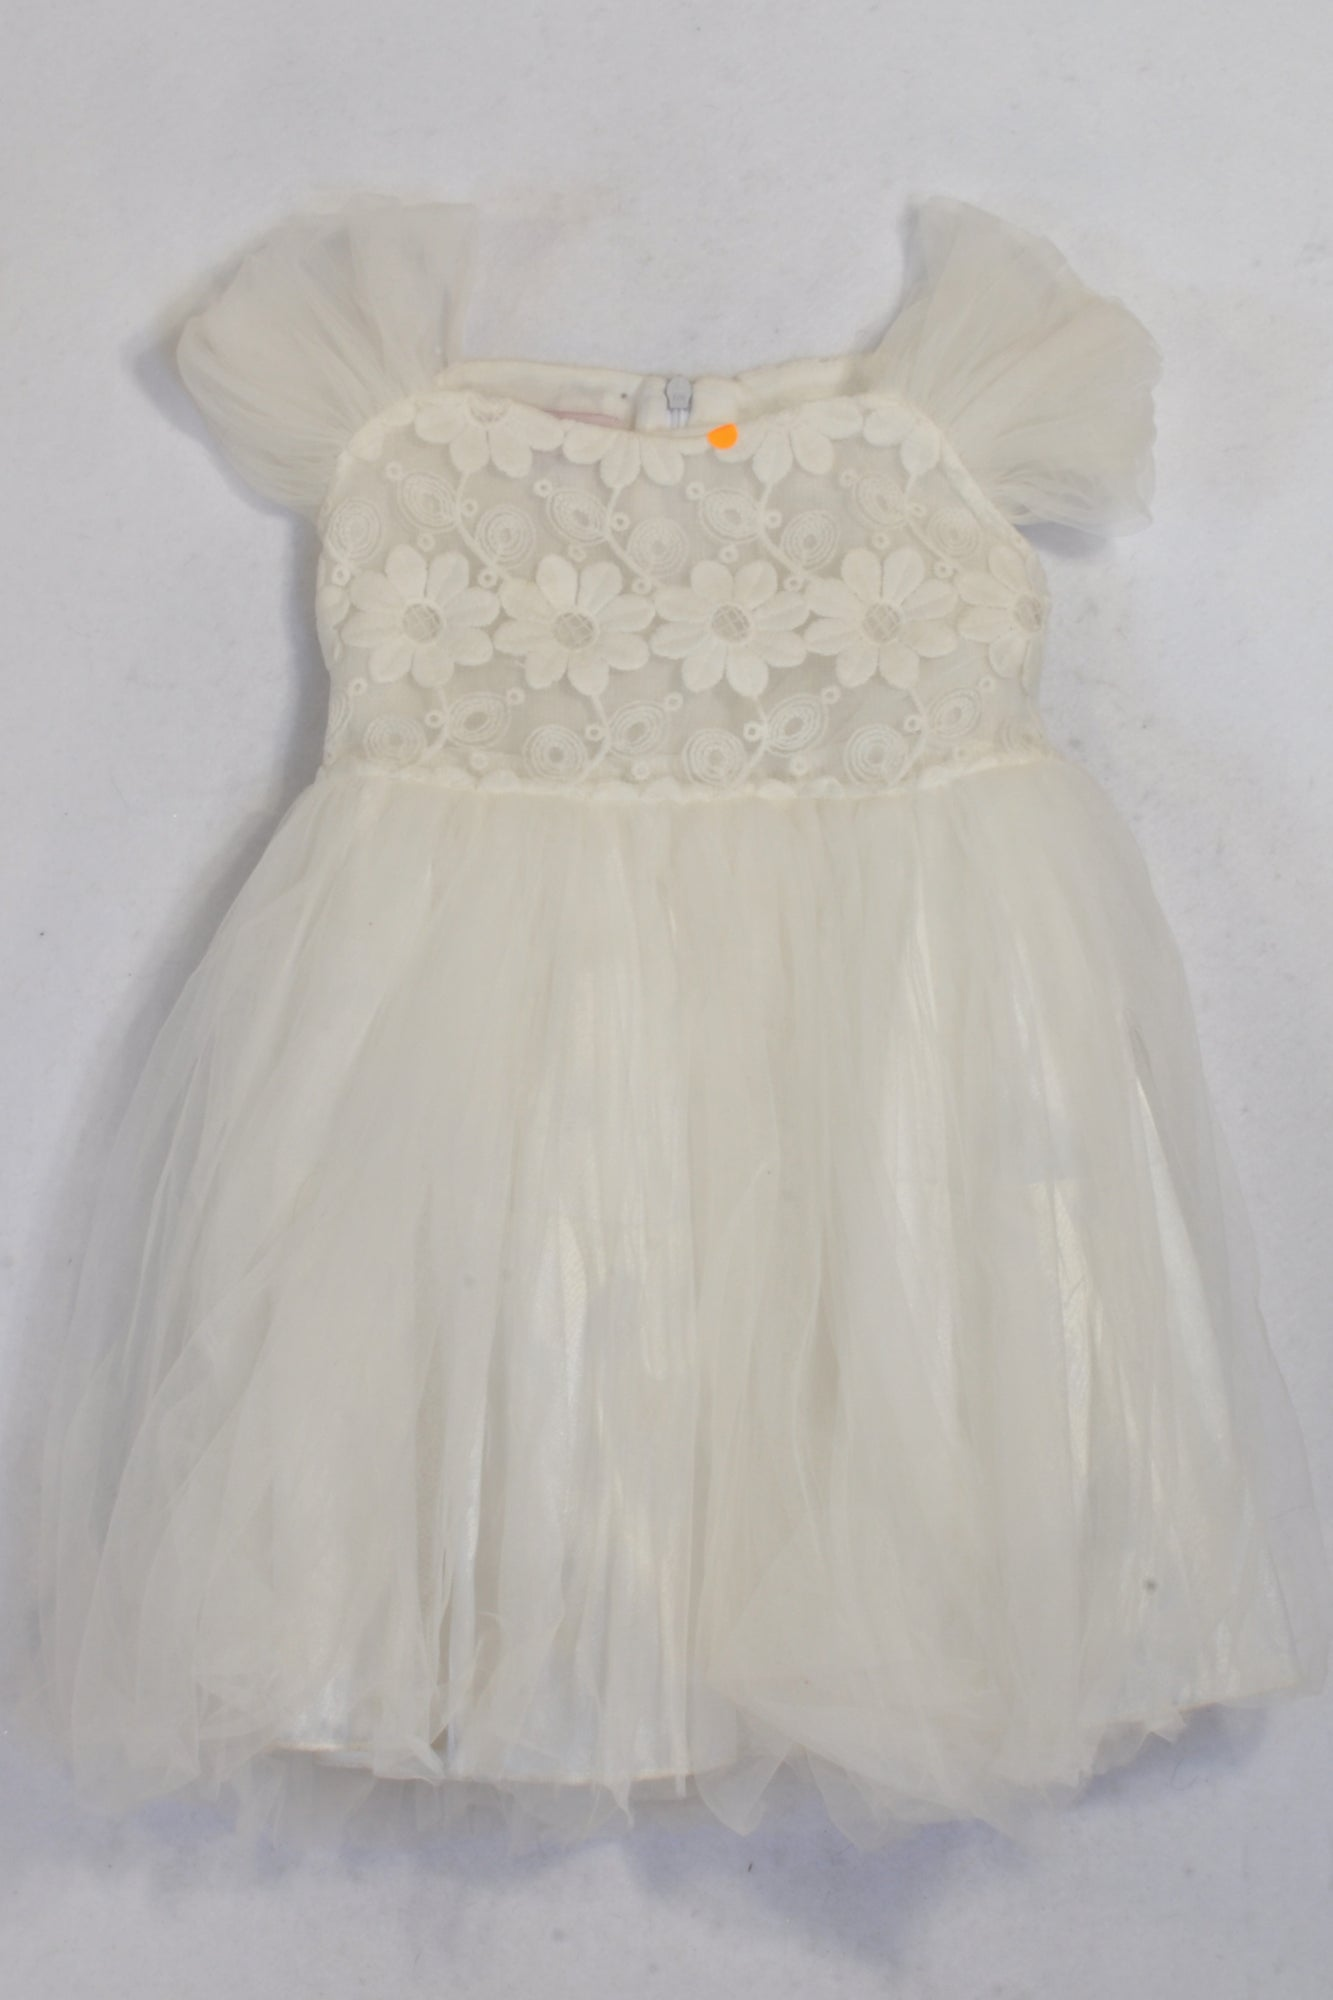 Chip's White Flower Lace Inset Tie Back Dress Girls 2-3 years